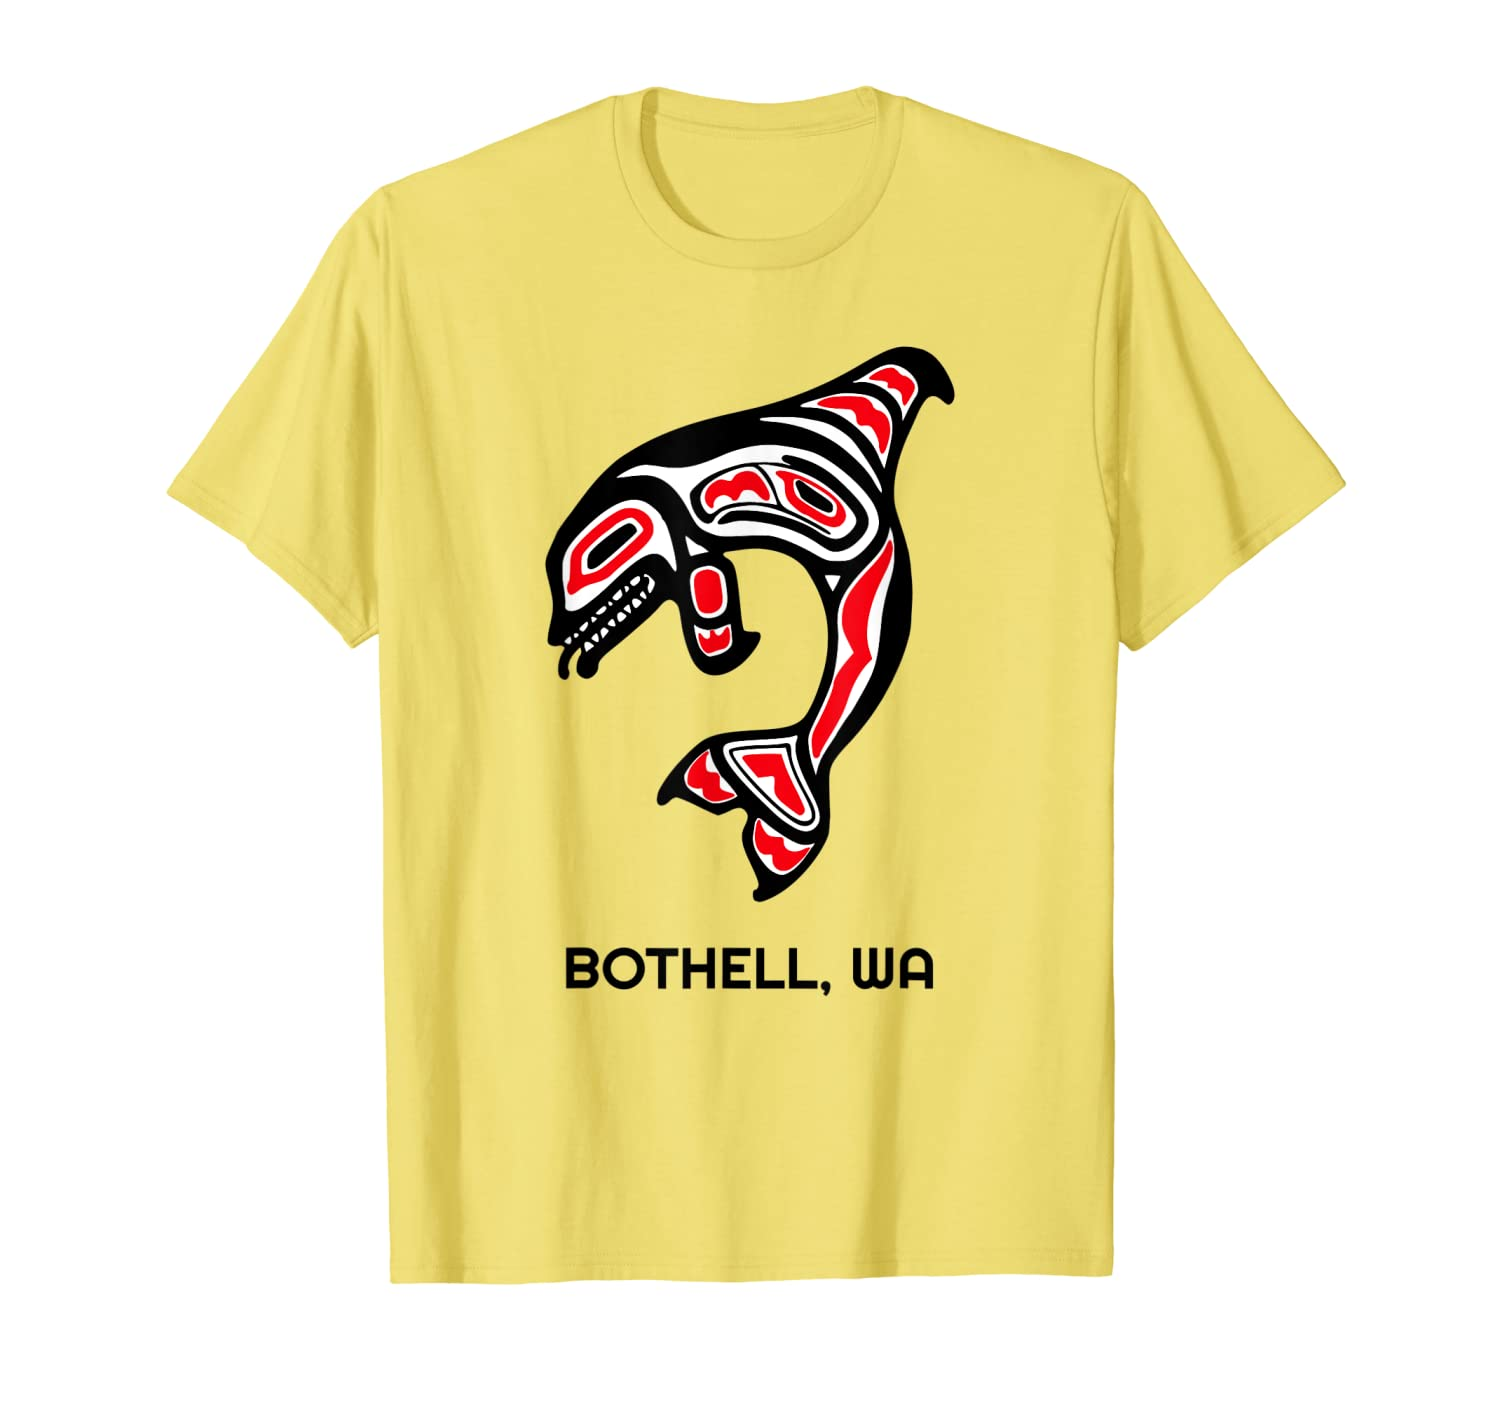 Bothell, Washington Native American Orca Killer Whales Gift T-Shirt